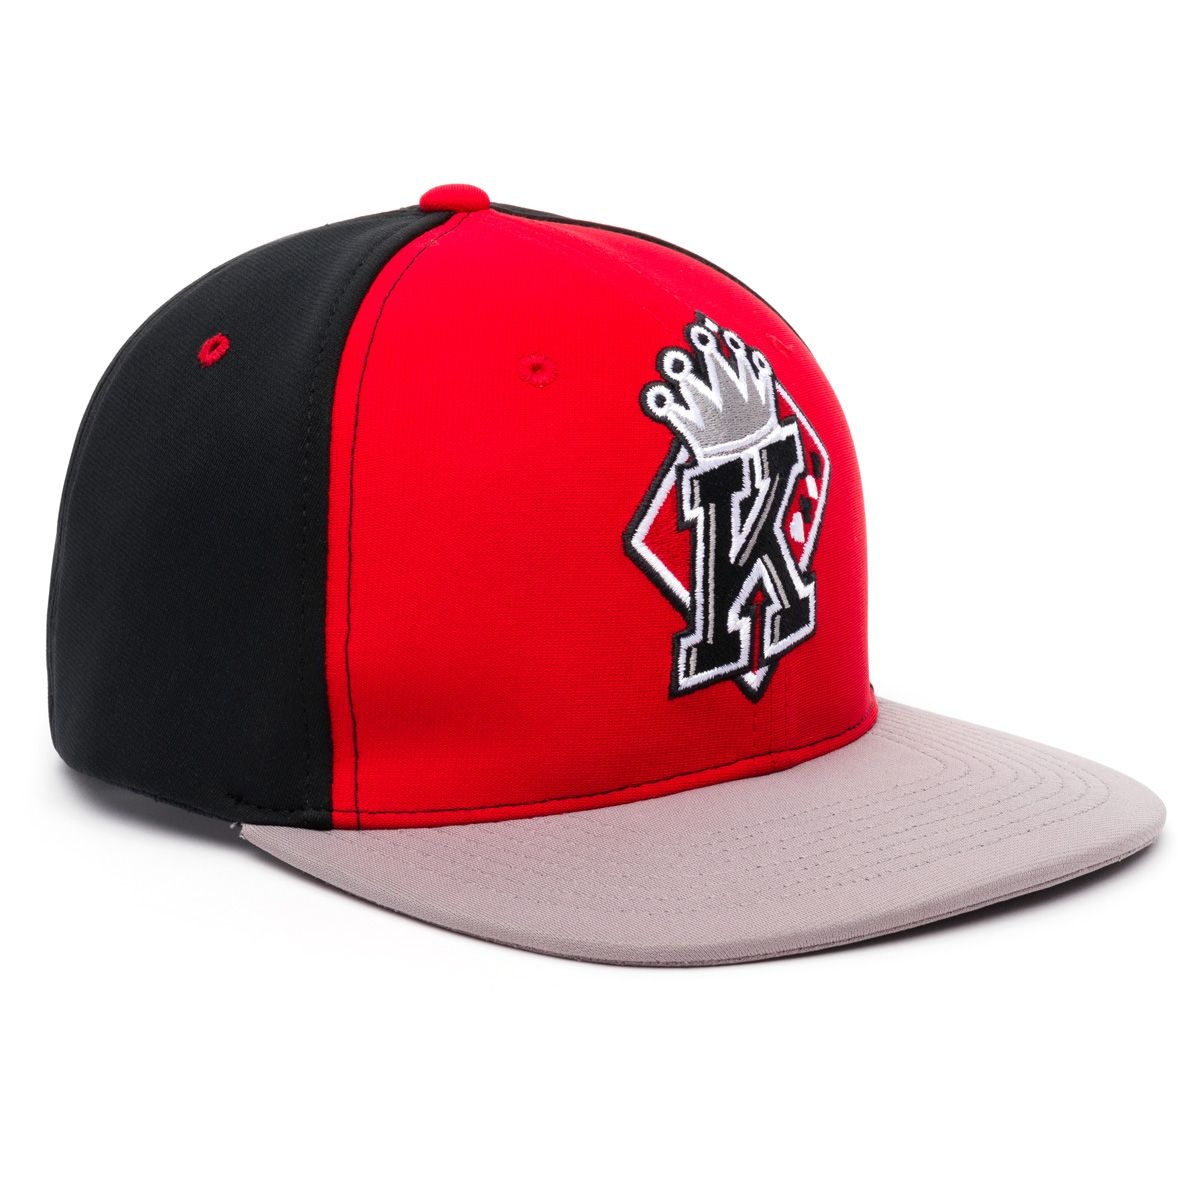 e9009d6154a5e custom embroidered hat structured crown